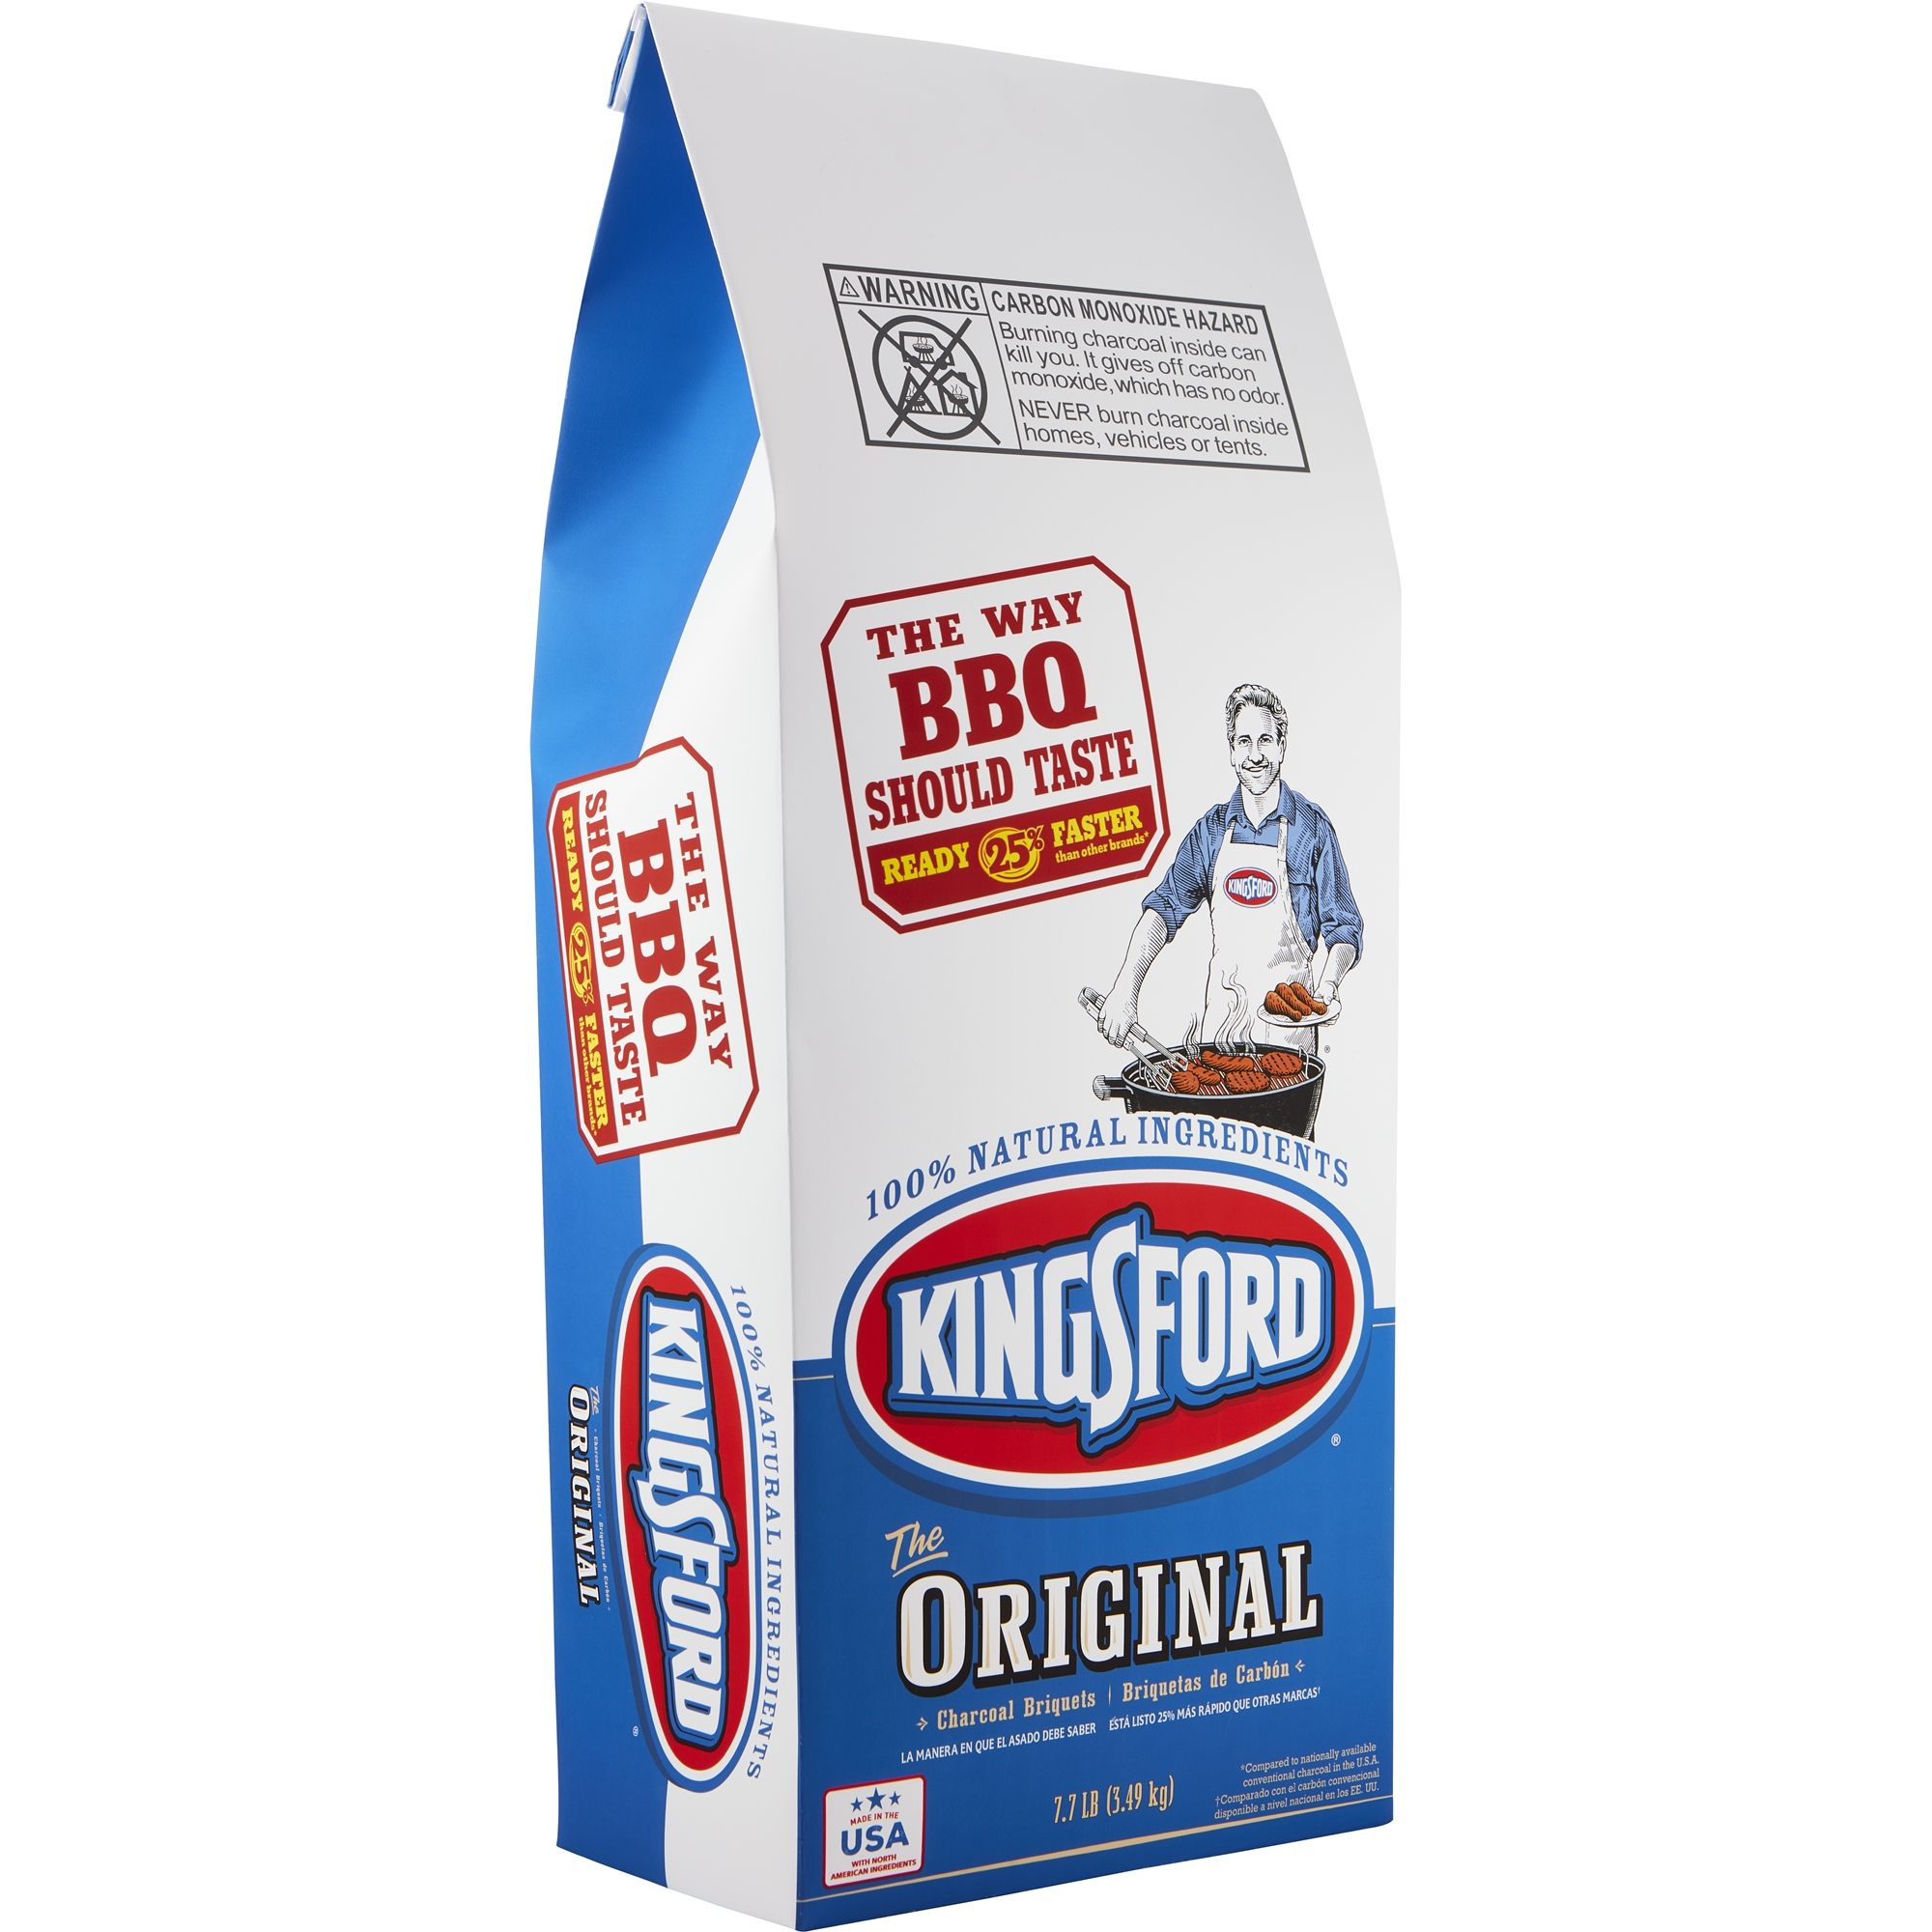 Kingsford Original Charcoal Briquettes, 7.7 lb Bag